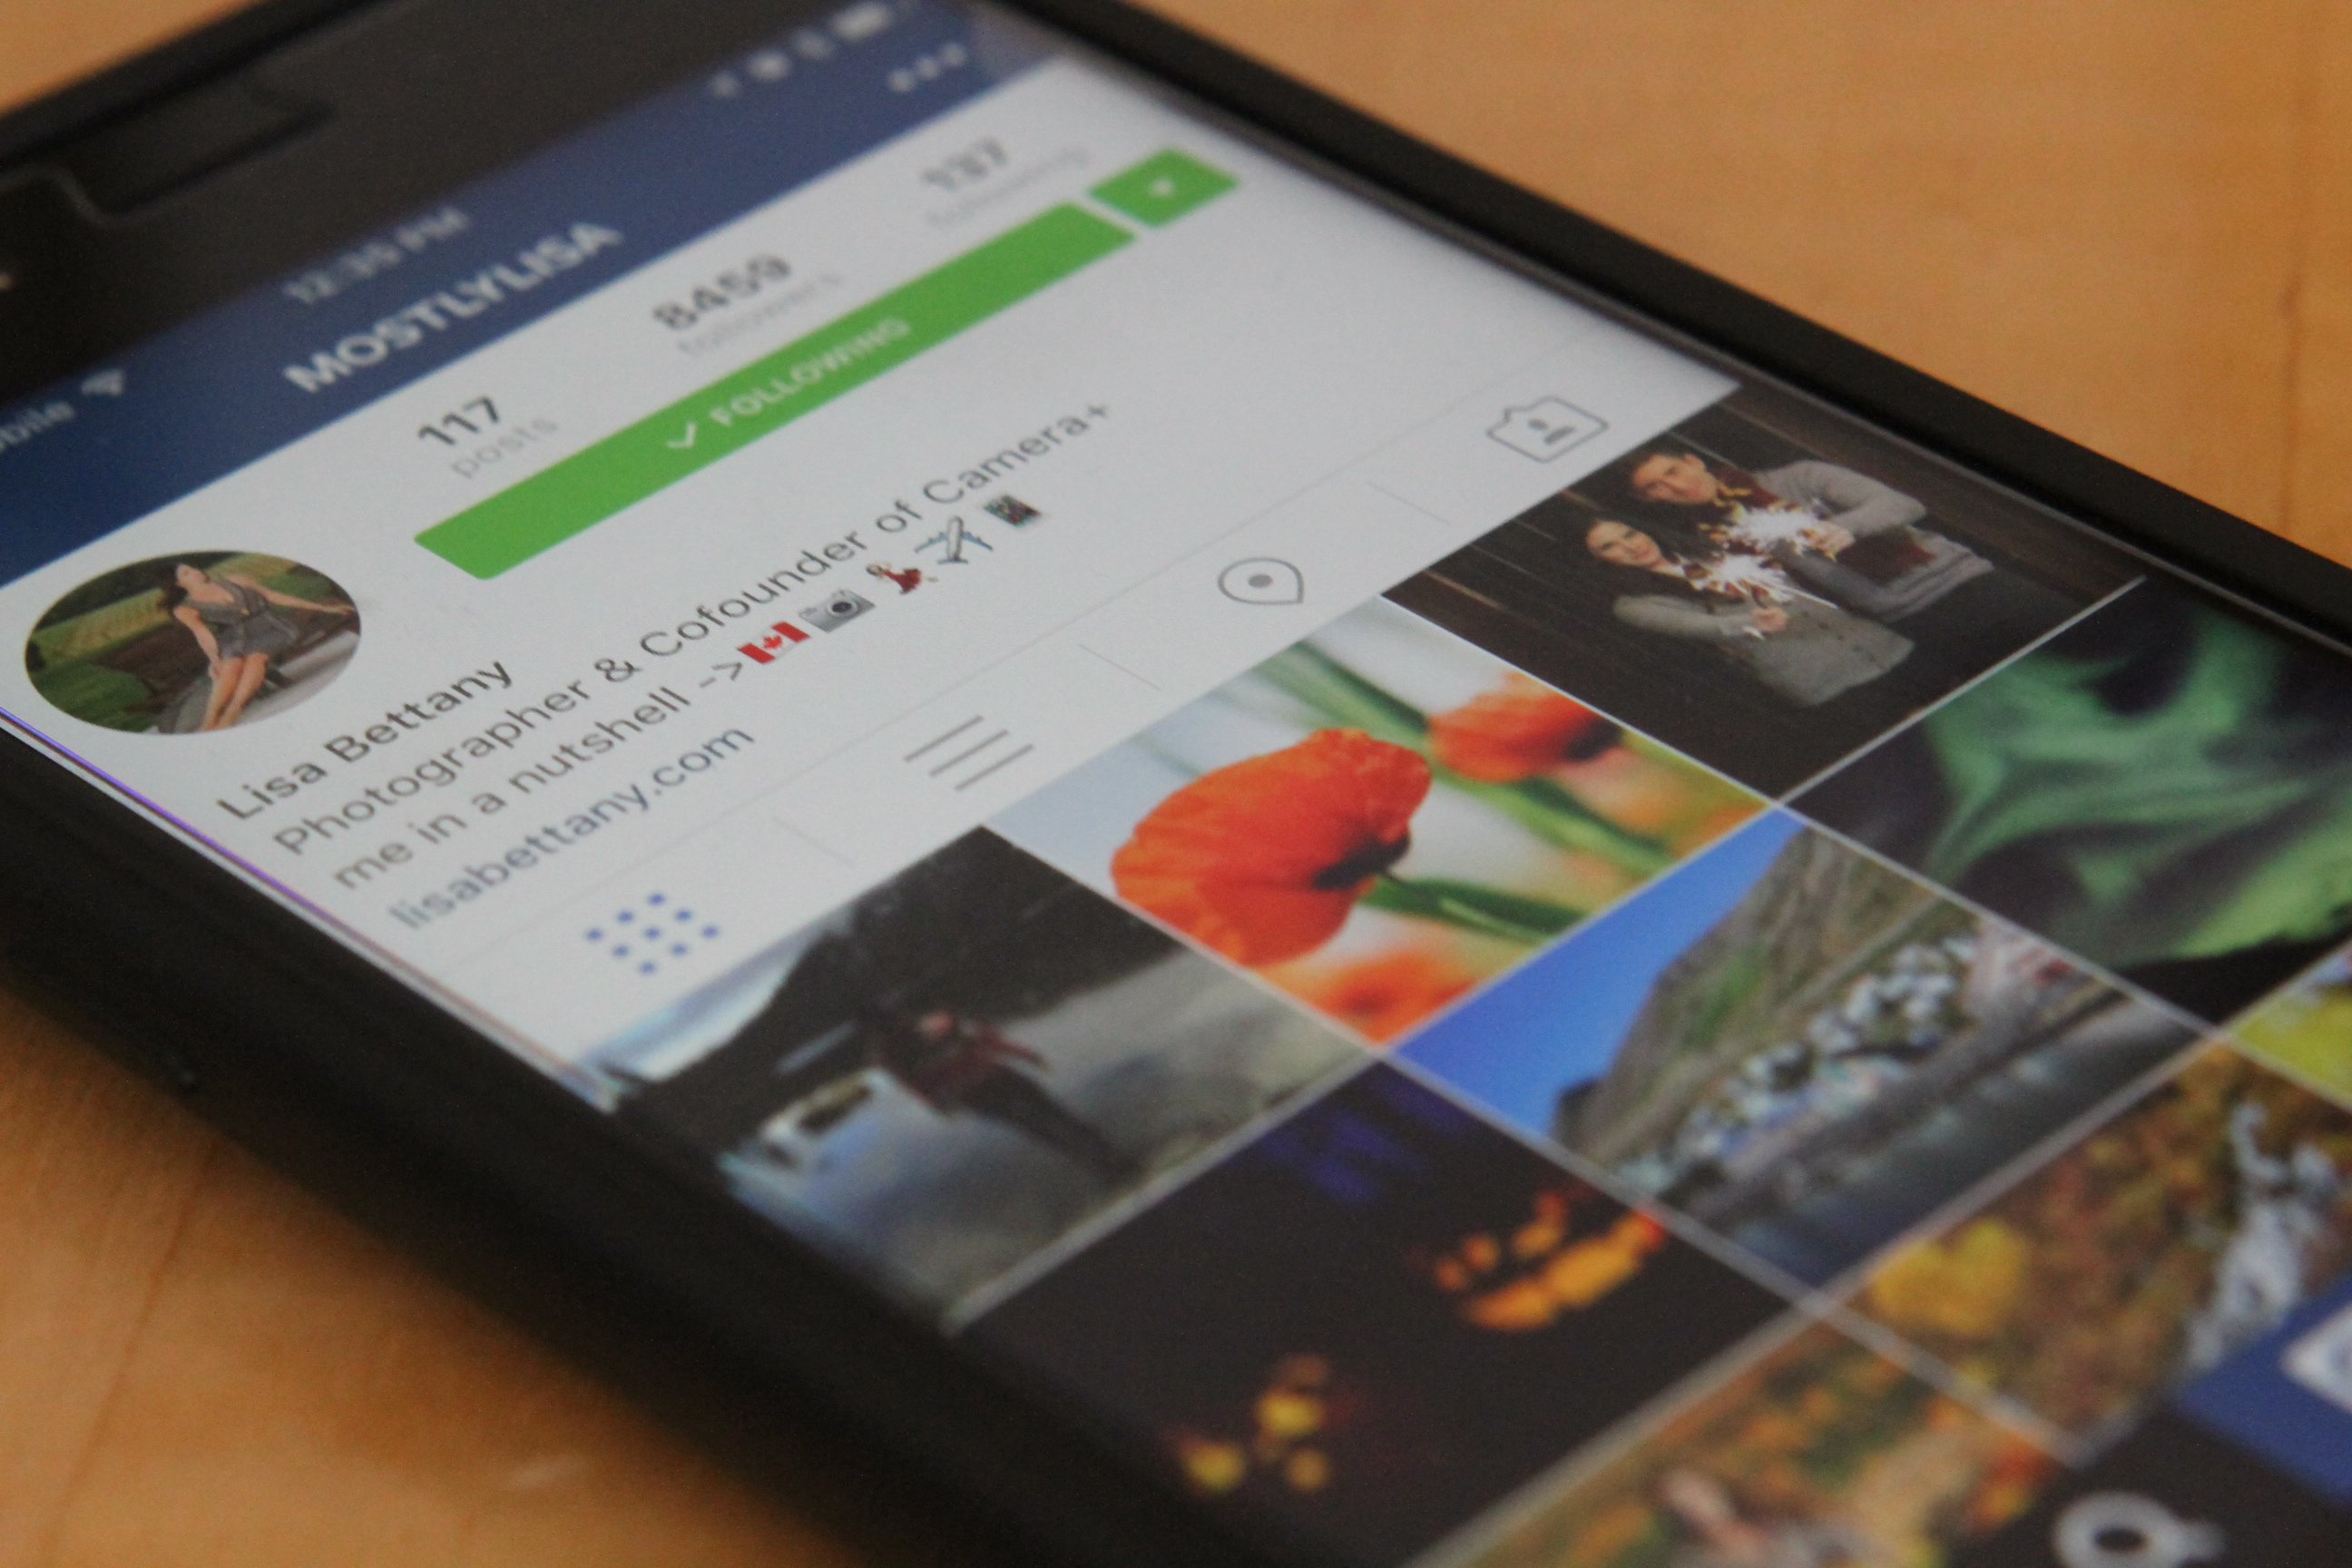 Instagram's Latest Update Makes It a Lot Like Pinterest